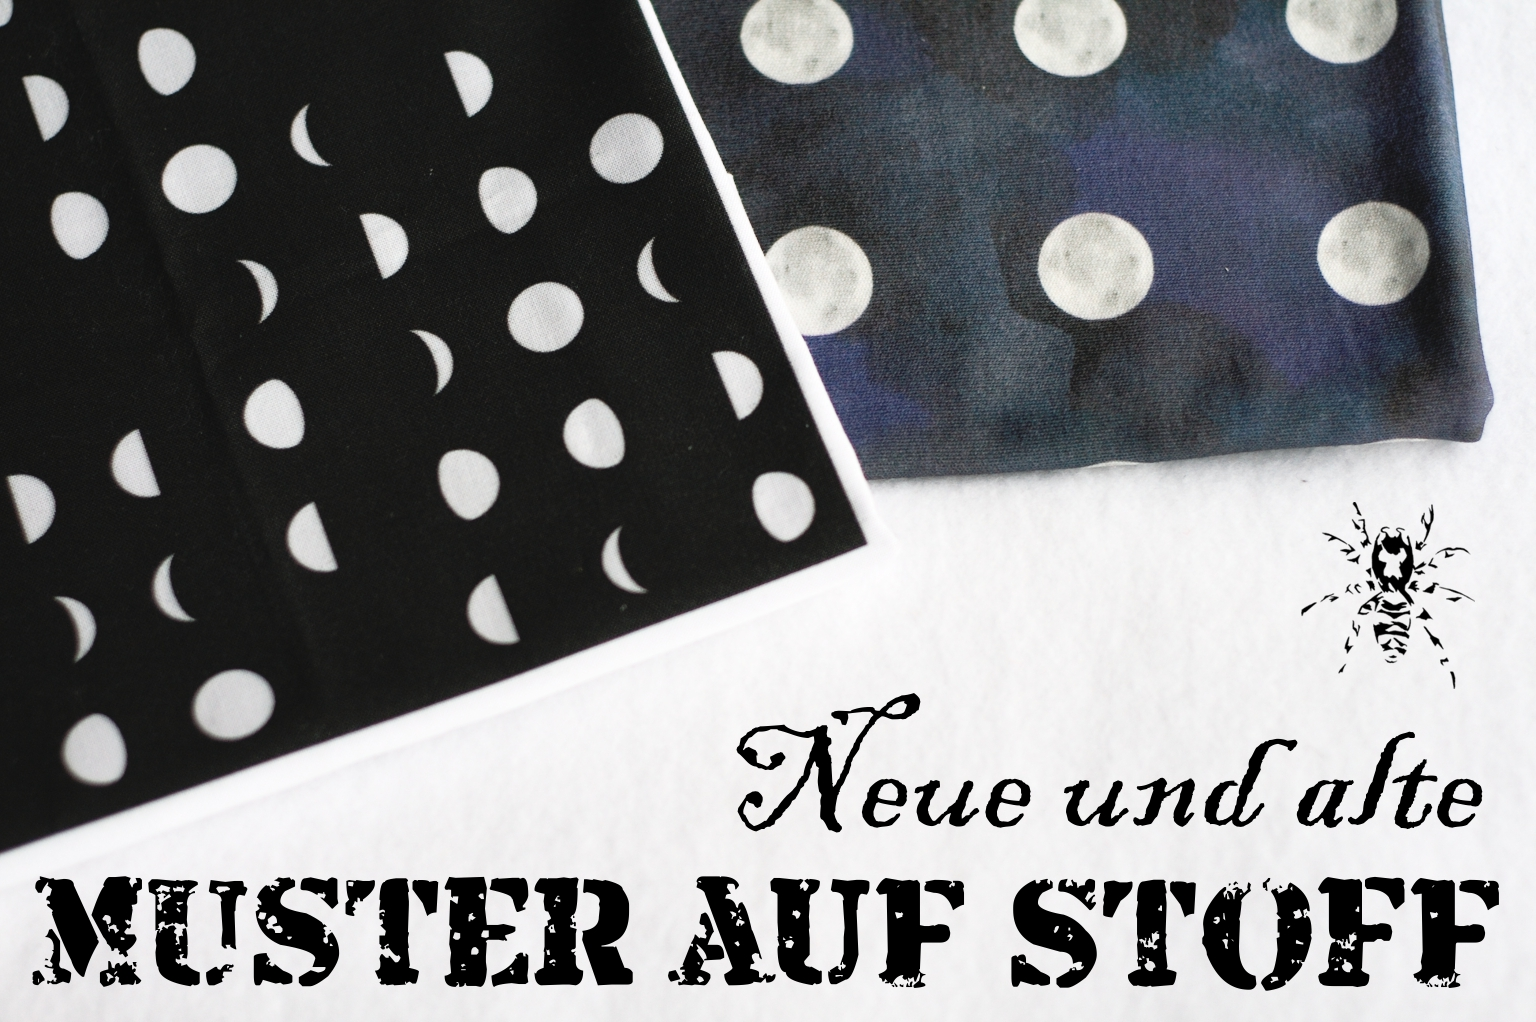 neue und alte muster auf stoff zebraspider diy anti fashion punk n hen siebdruck blog. Black Bedroom Furniture Sets. Home Design Ideas